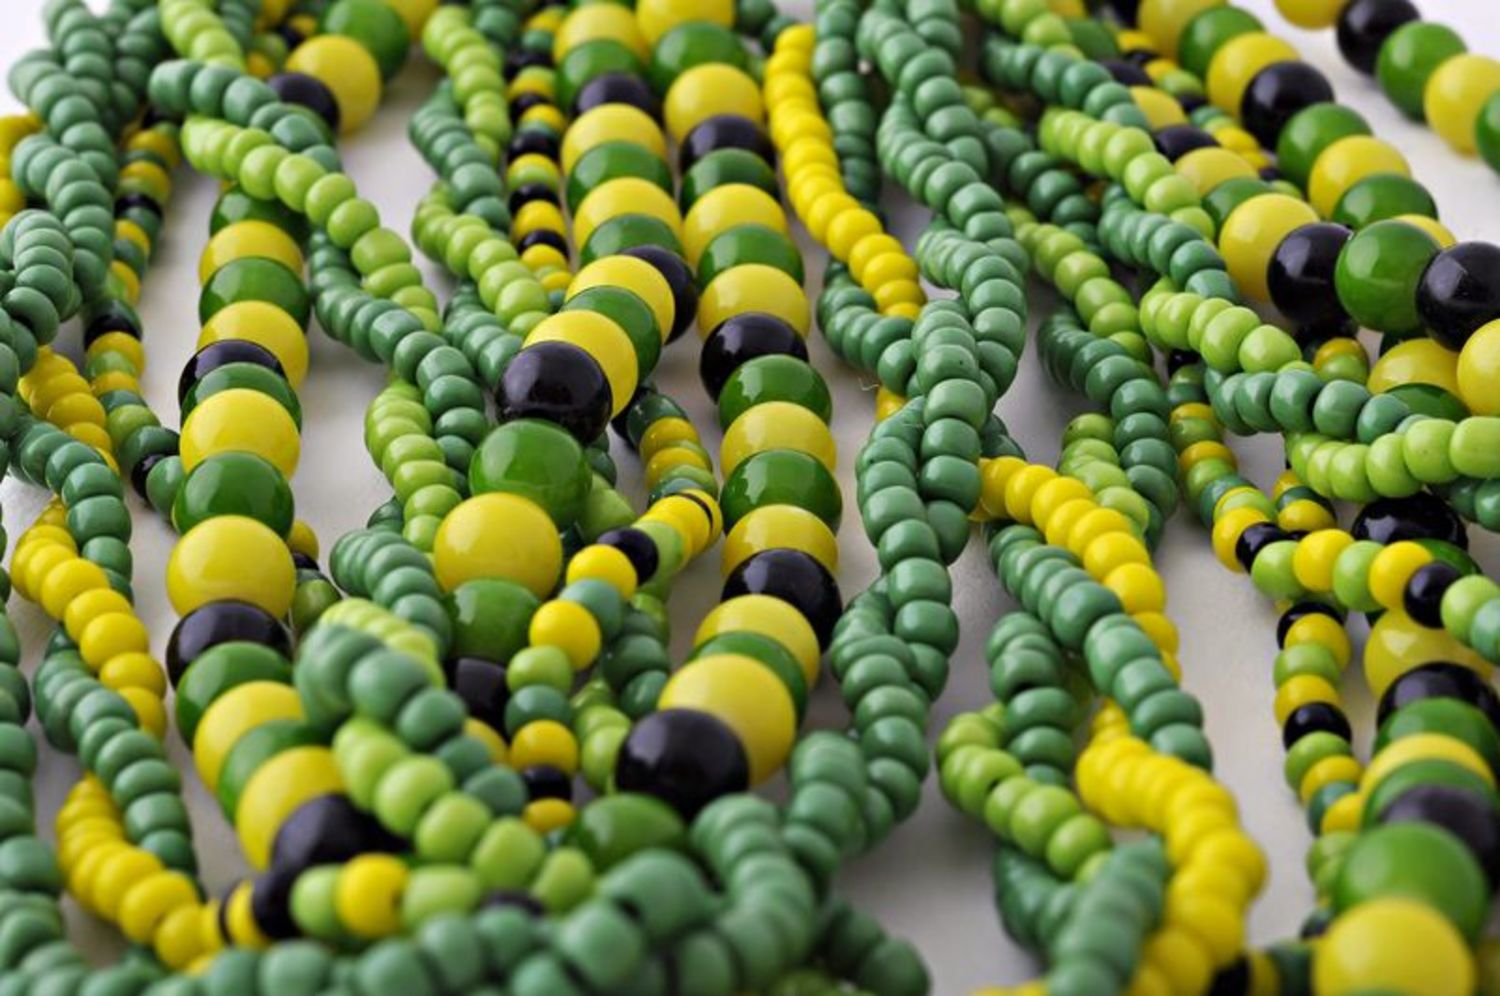 Green glass beads photo 3